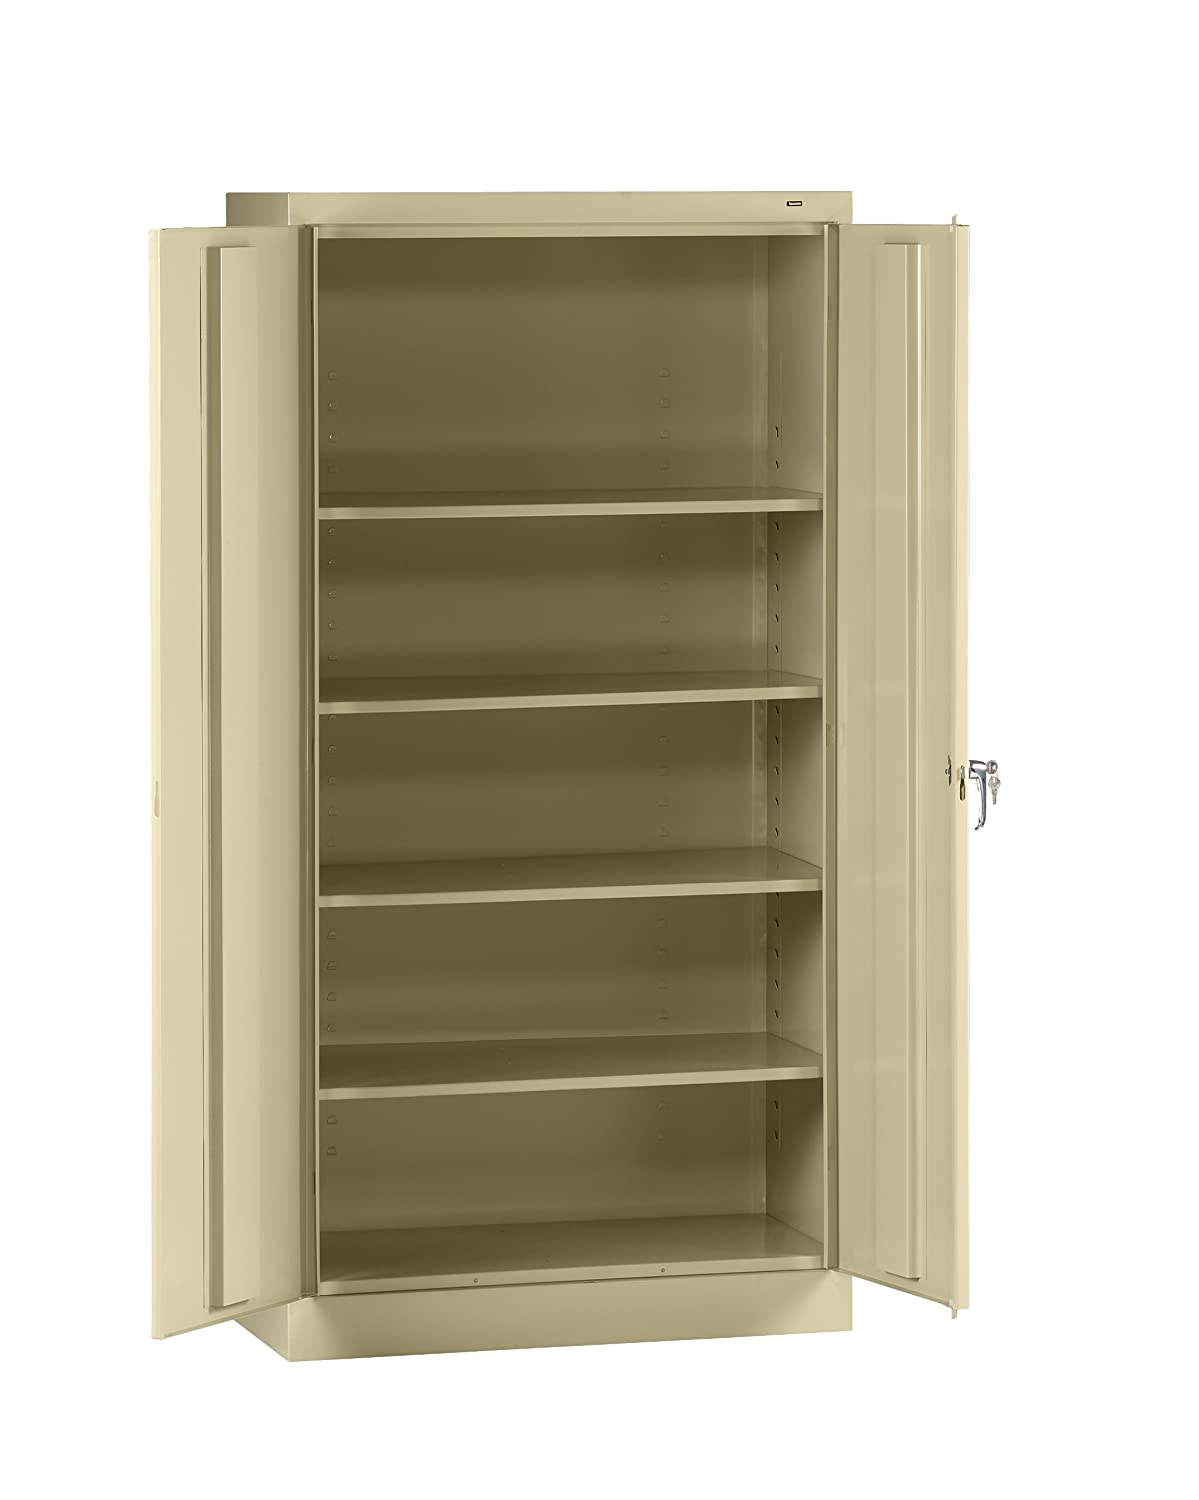 "Tennsco 7218 24 Gauge Steel Standard Welded Storage Cabinet, 4 Shelves, 150 lbs Capacity per Shelf, 36"" Width x 72"" Height x 18"" Depth, Putty"